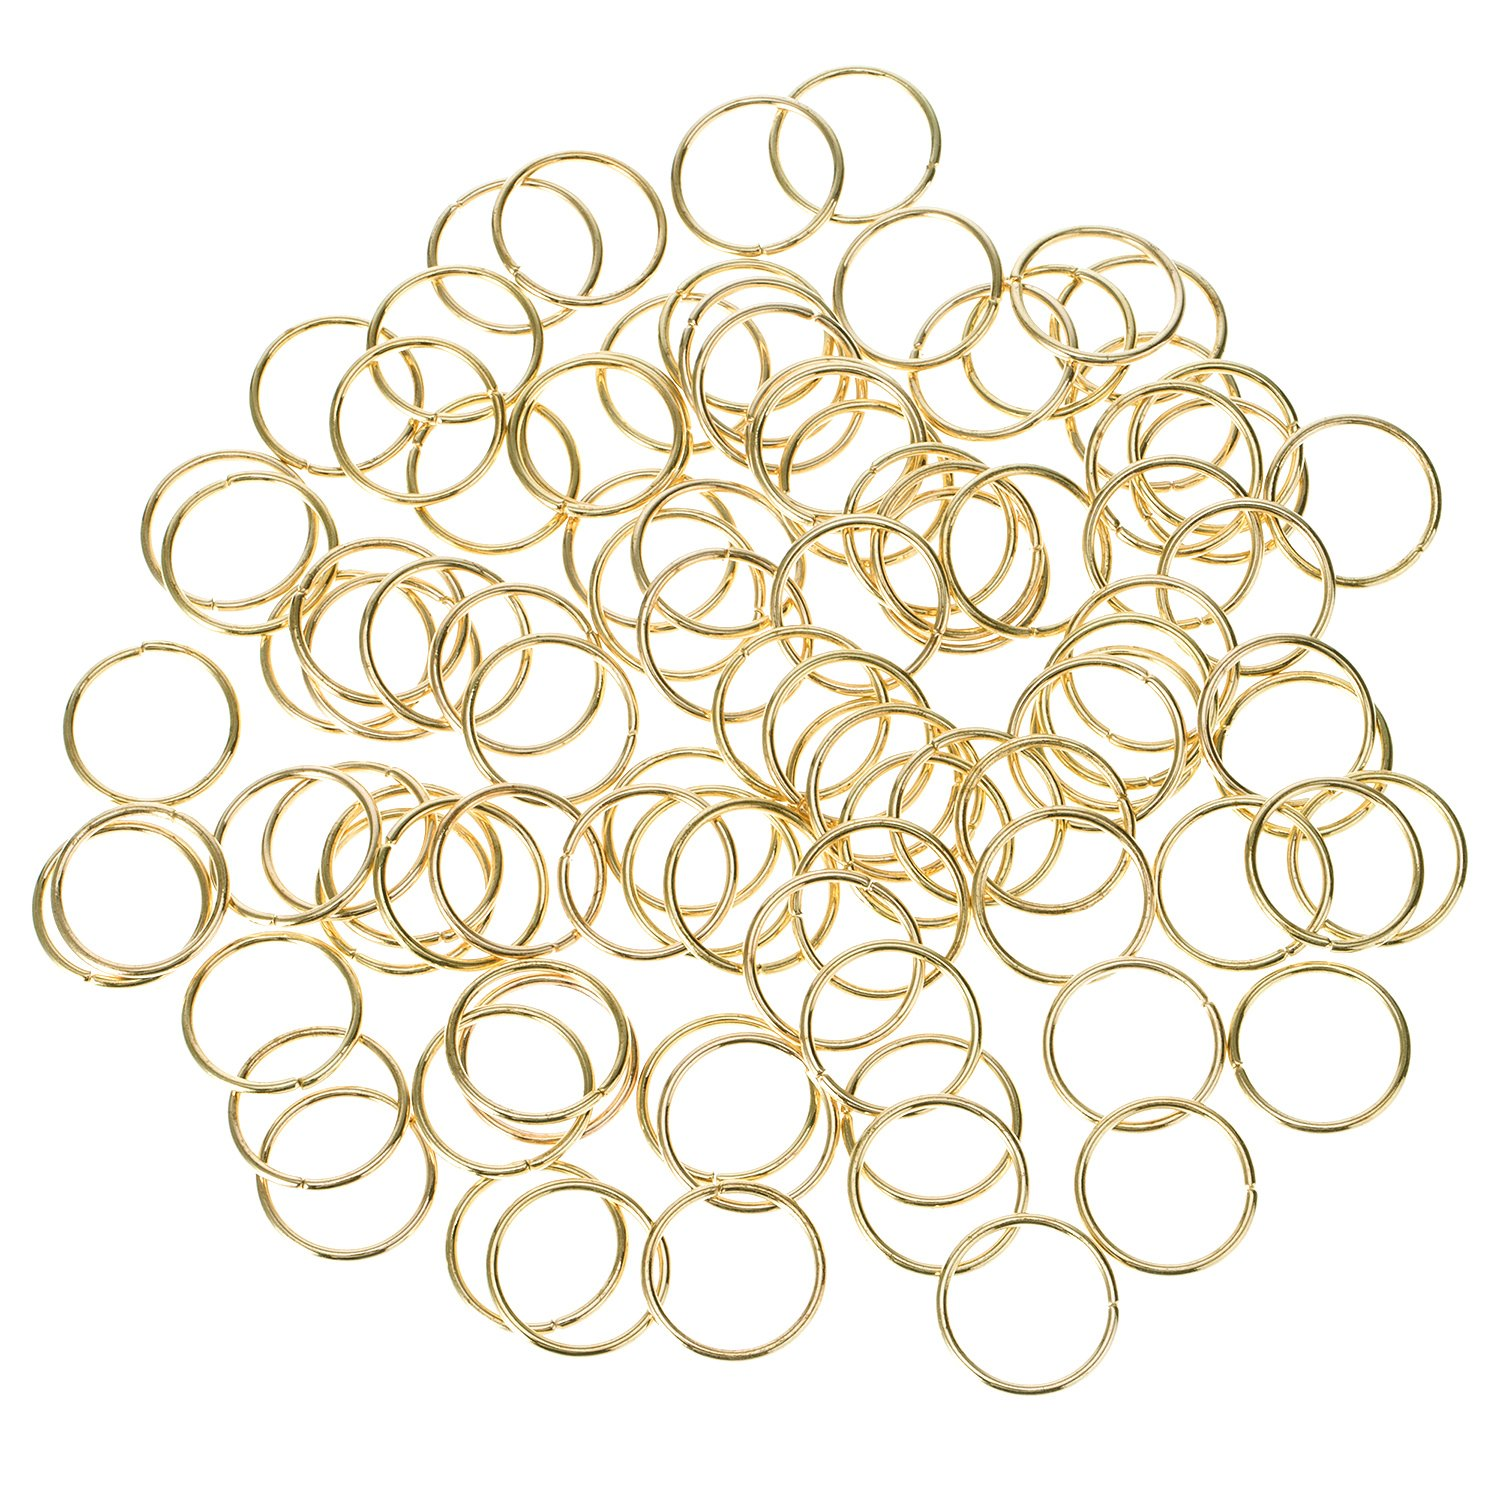 100 Pack Hair Rings Braid Rings Hair Loop Clips Hair Accessories (Silver) Hotop